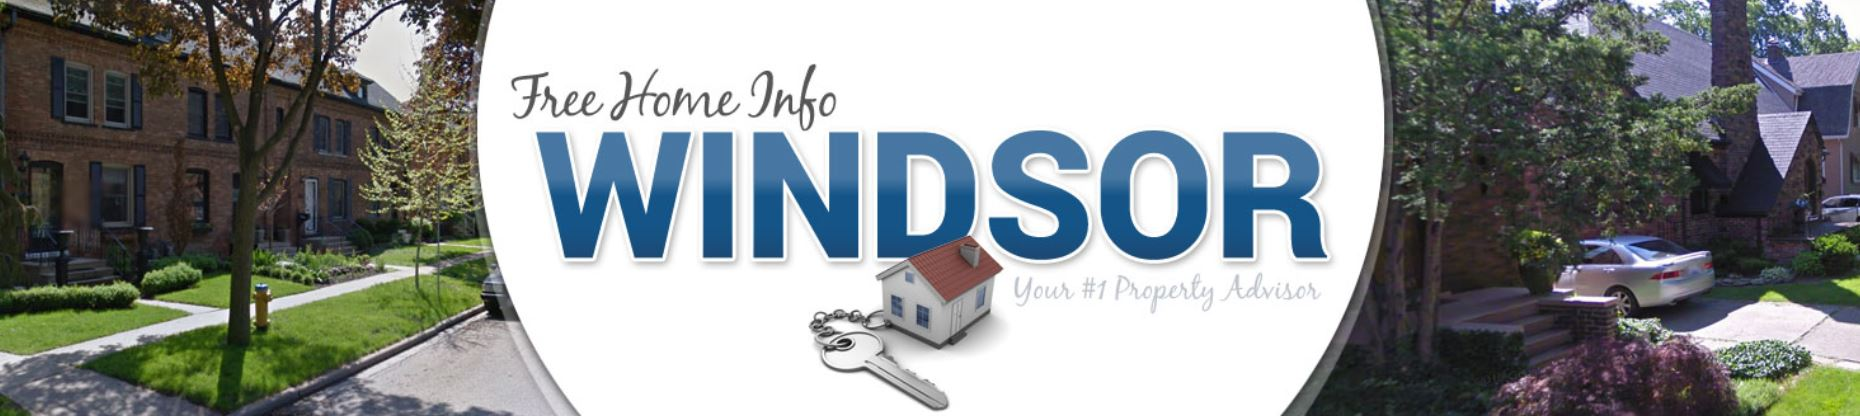 Discovering the City of Windsor Ontario and it's Real Estate Market.  Important information and tips for Buyers and Sellers by real estate agent Ron Klingbyle specializing in Windsor Ontario real estate.